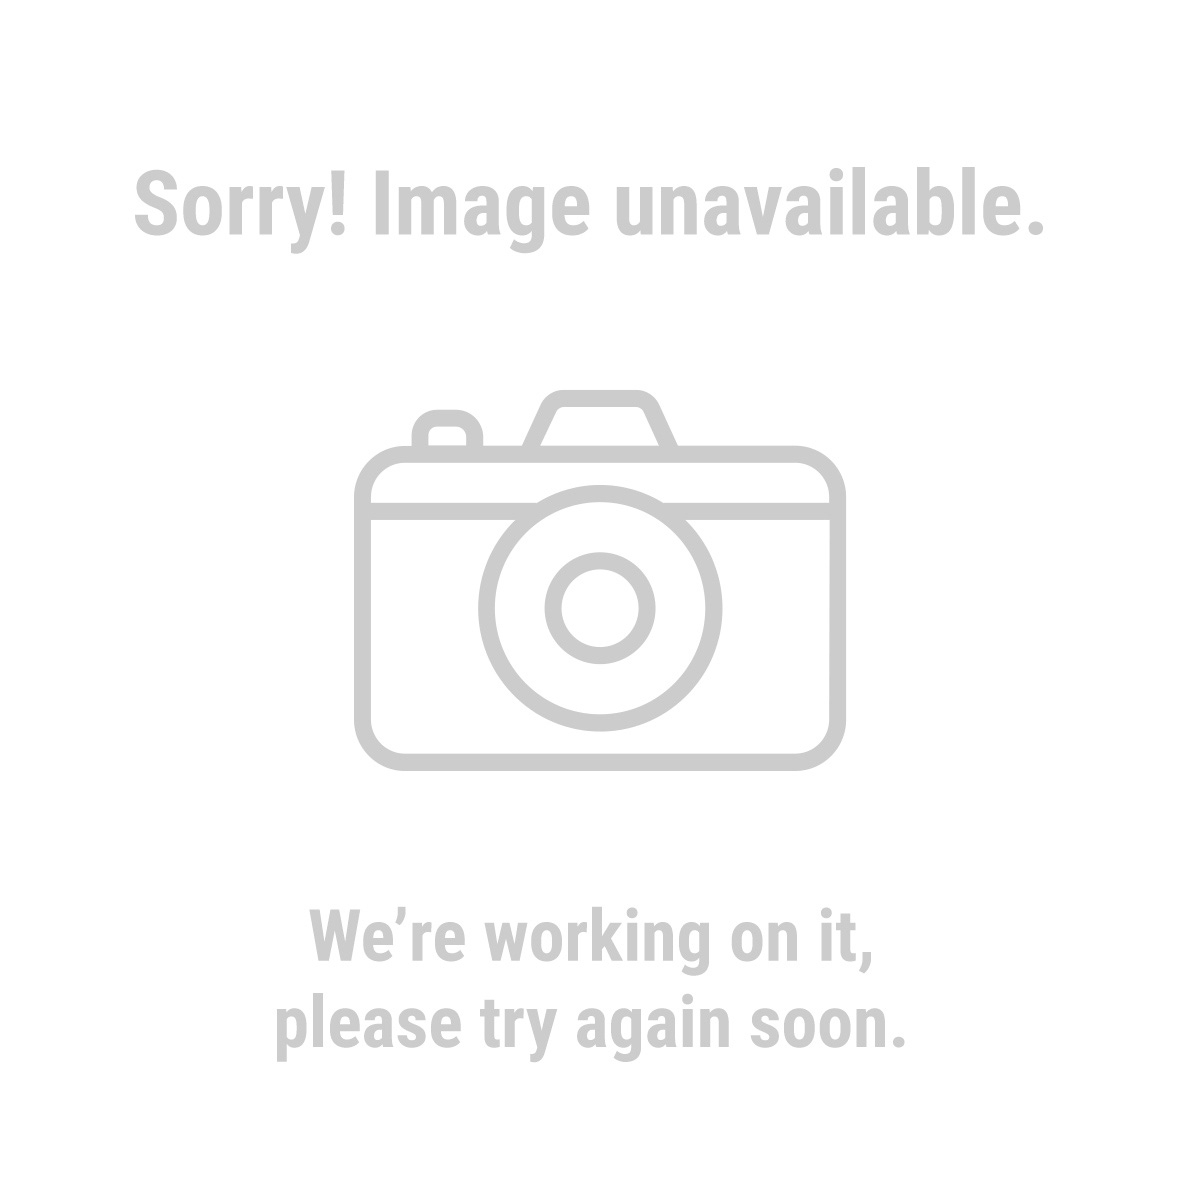 Heater Attachment for Portable Blower